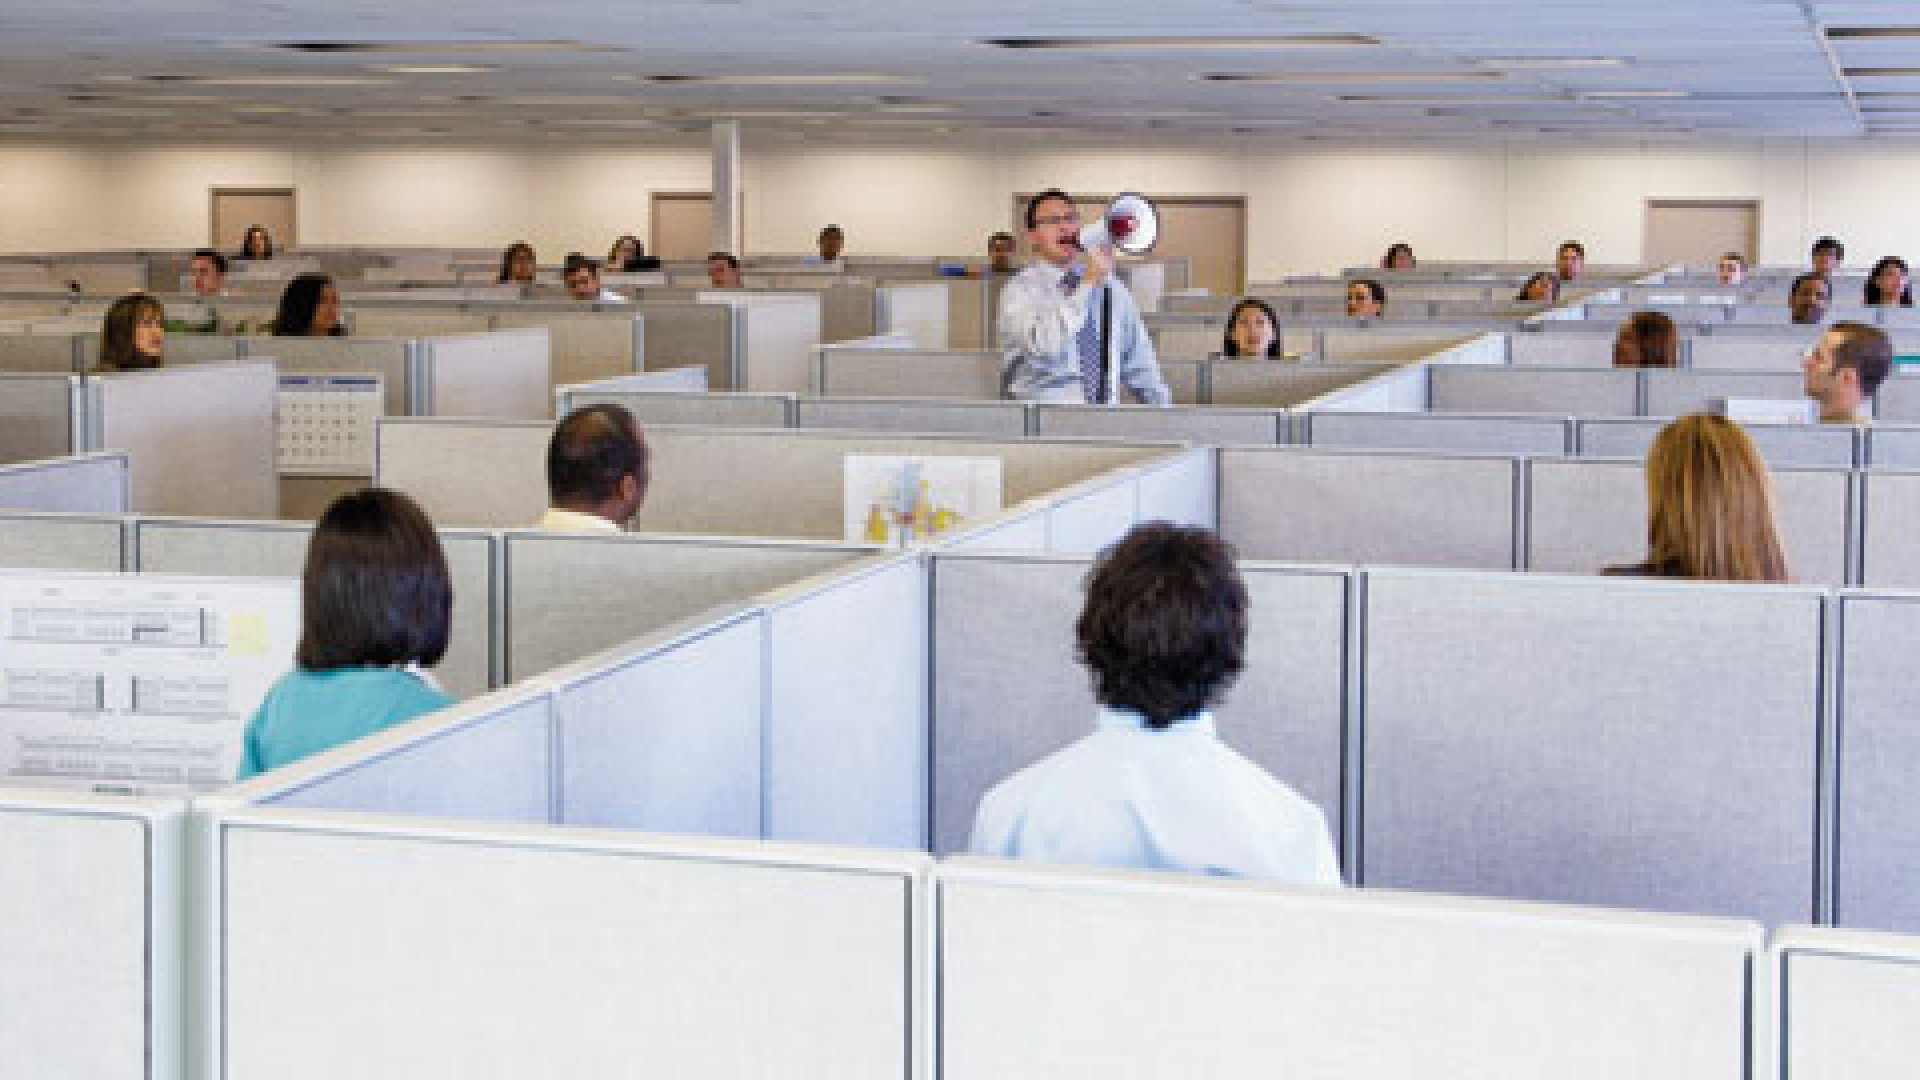 Your Office Design Is Killing Teamwork